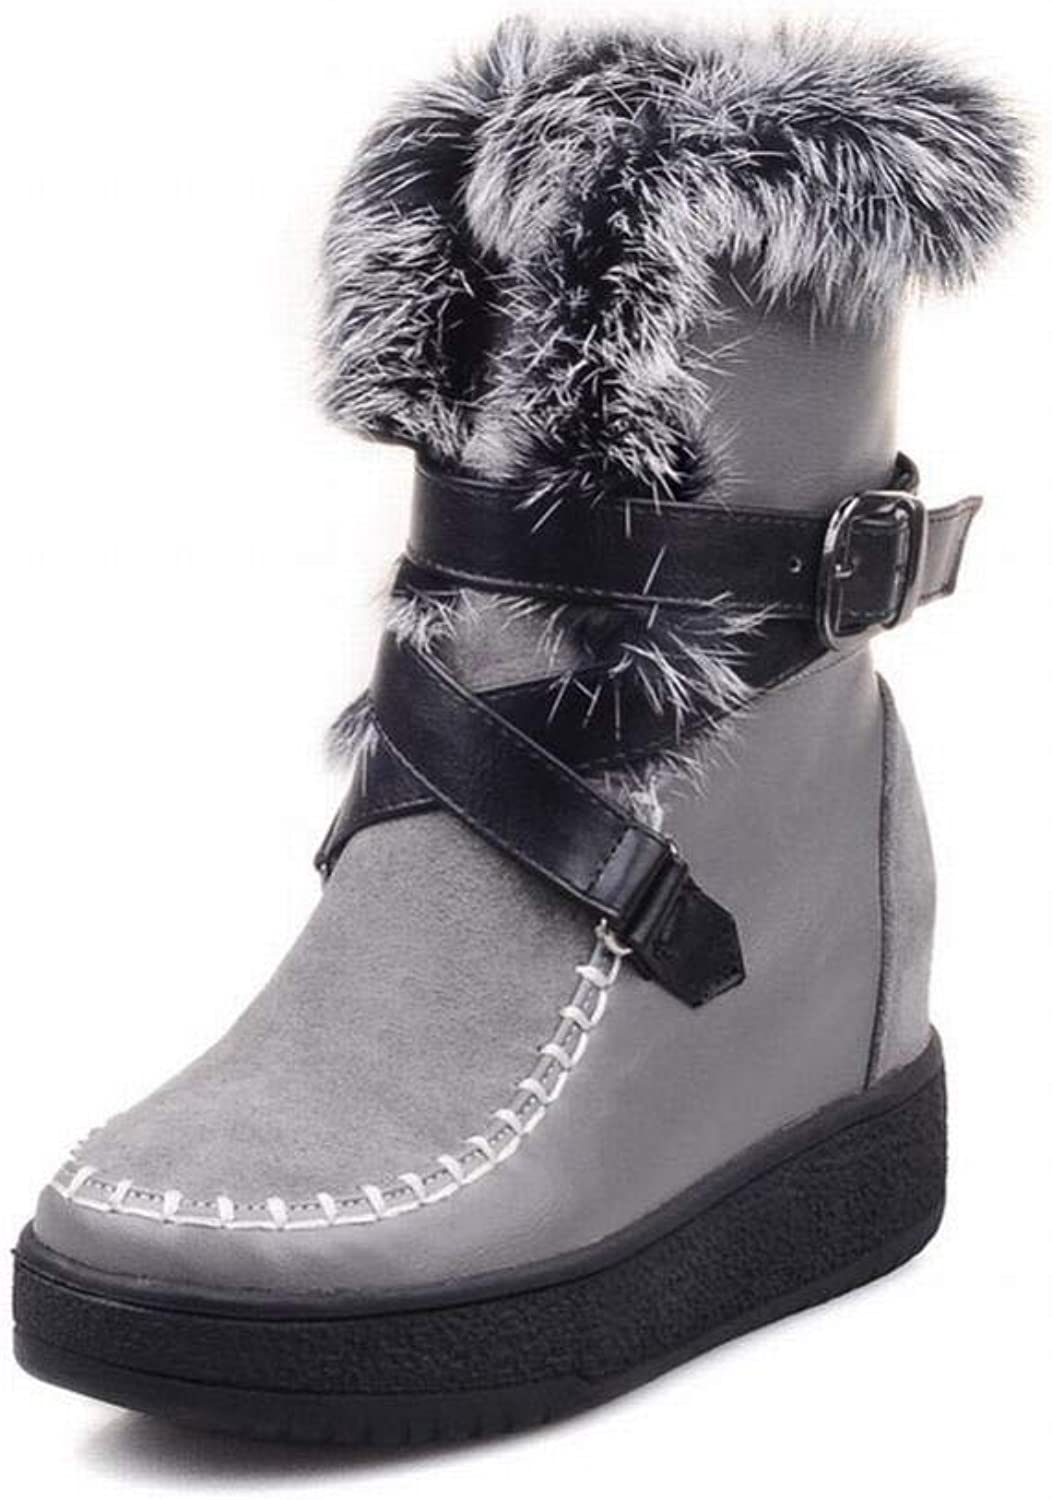 Women's Boots - Increased in Autumn and Winter Non-Slip Warm High Snow Boots Tube Women's Cotton shoes Plus Velvet Women's Boots 33-40